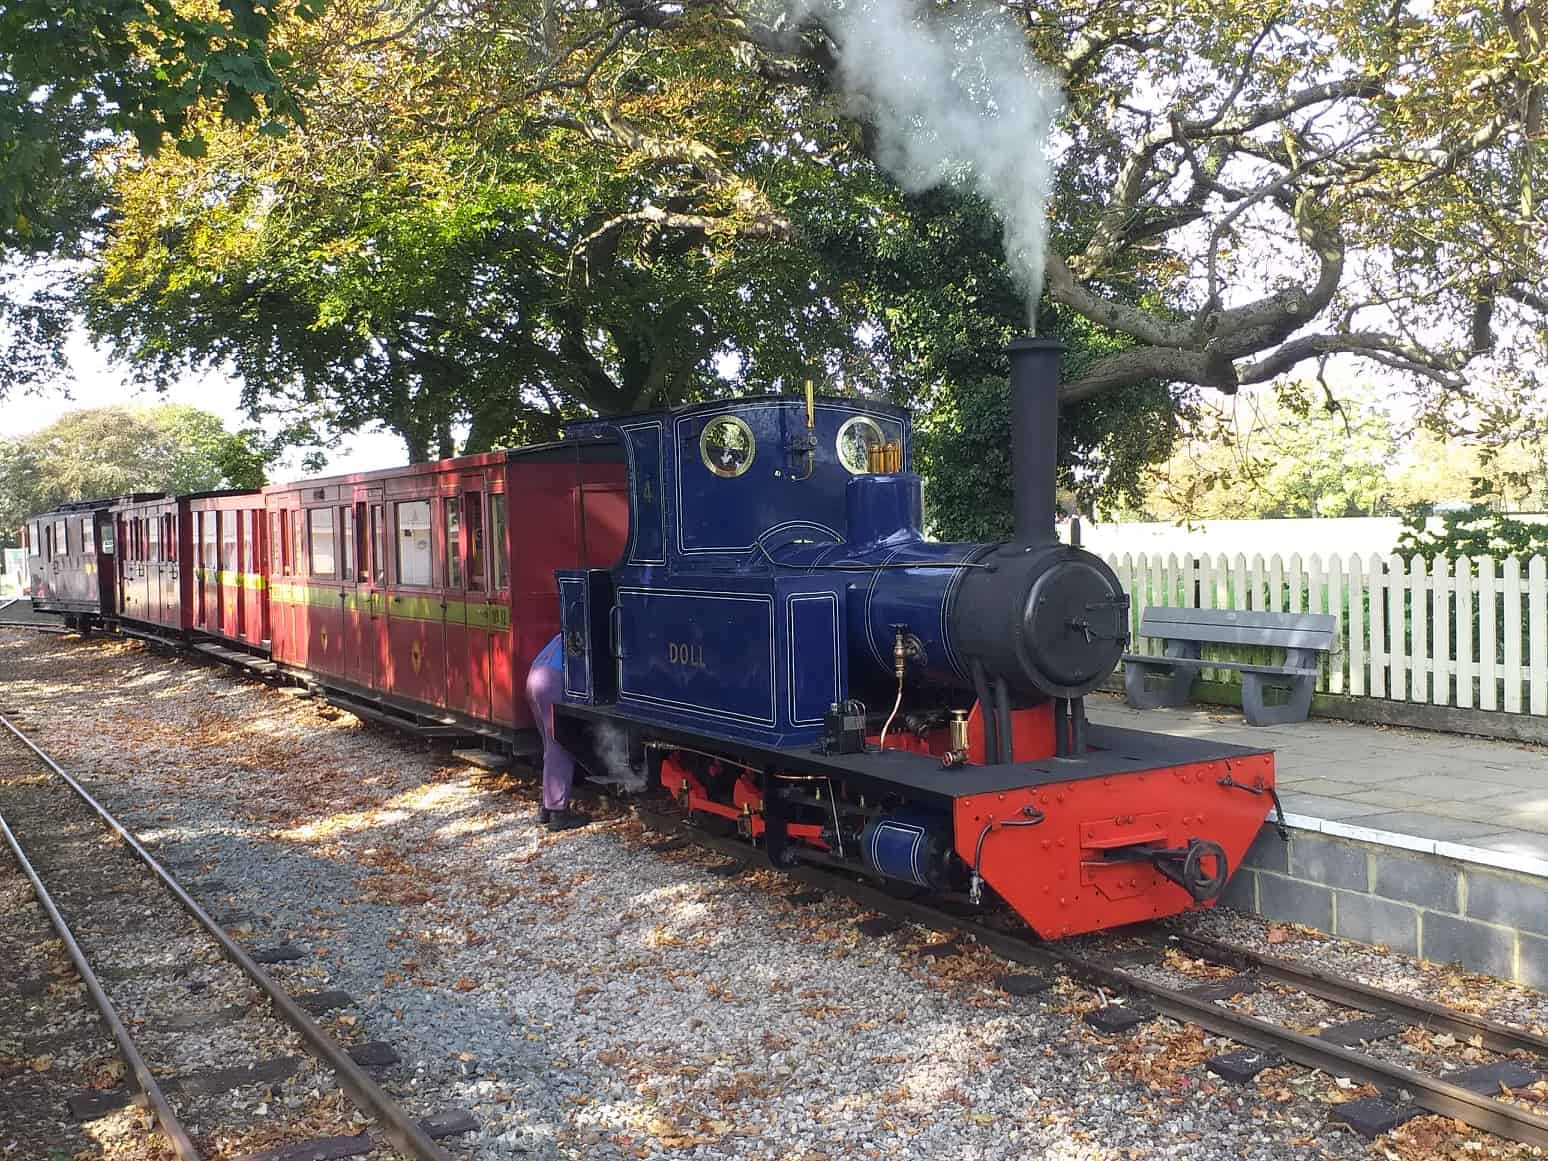 A full train being pulled on the Leighton Buzzard Railway.